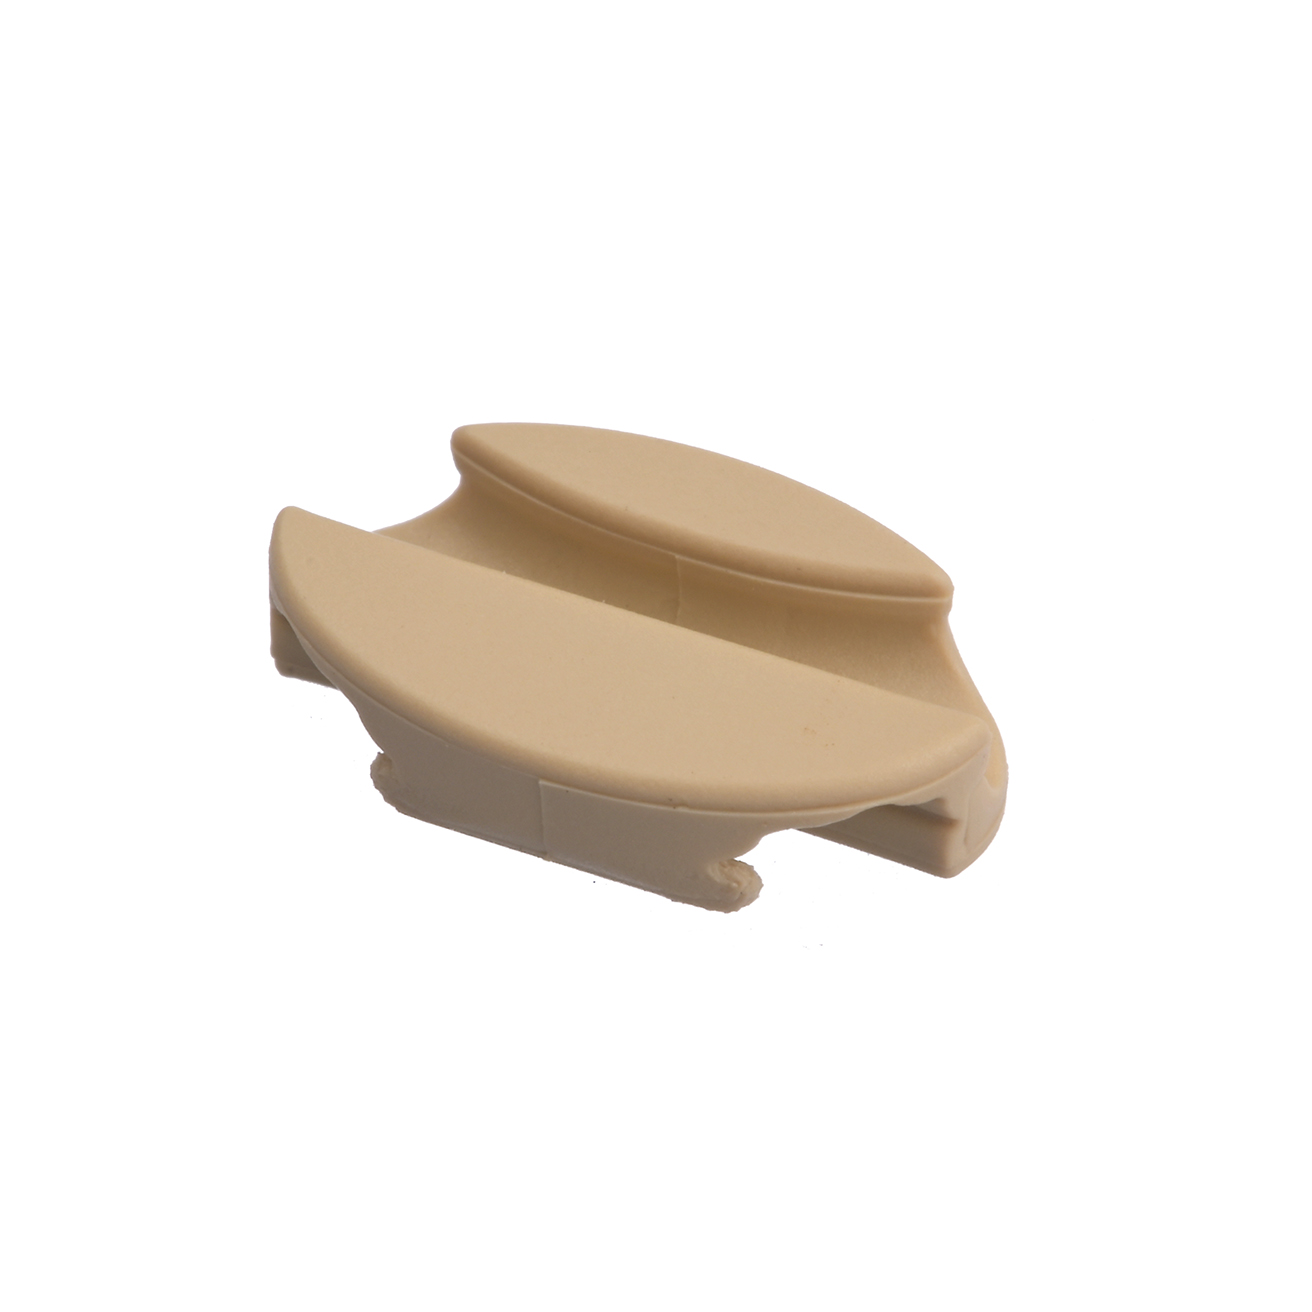 Cable clip, beige